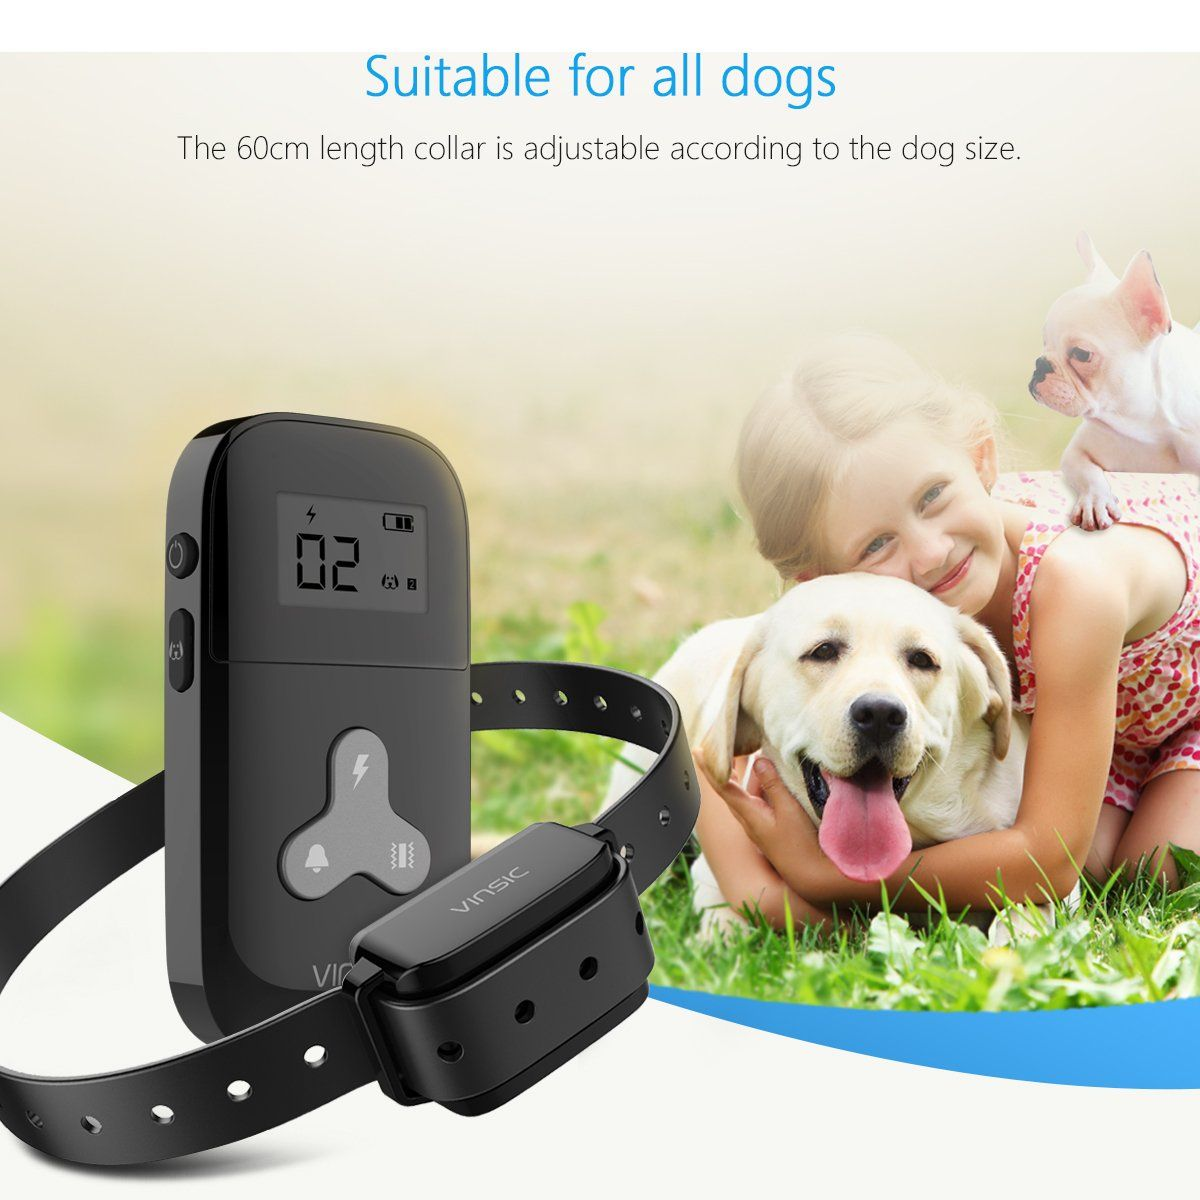 Vinsic Dog Training Collar With Remote Shock Collar For Dogs 300